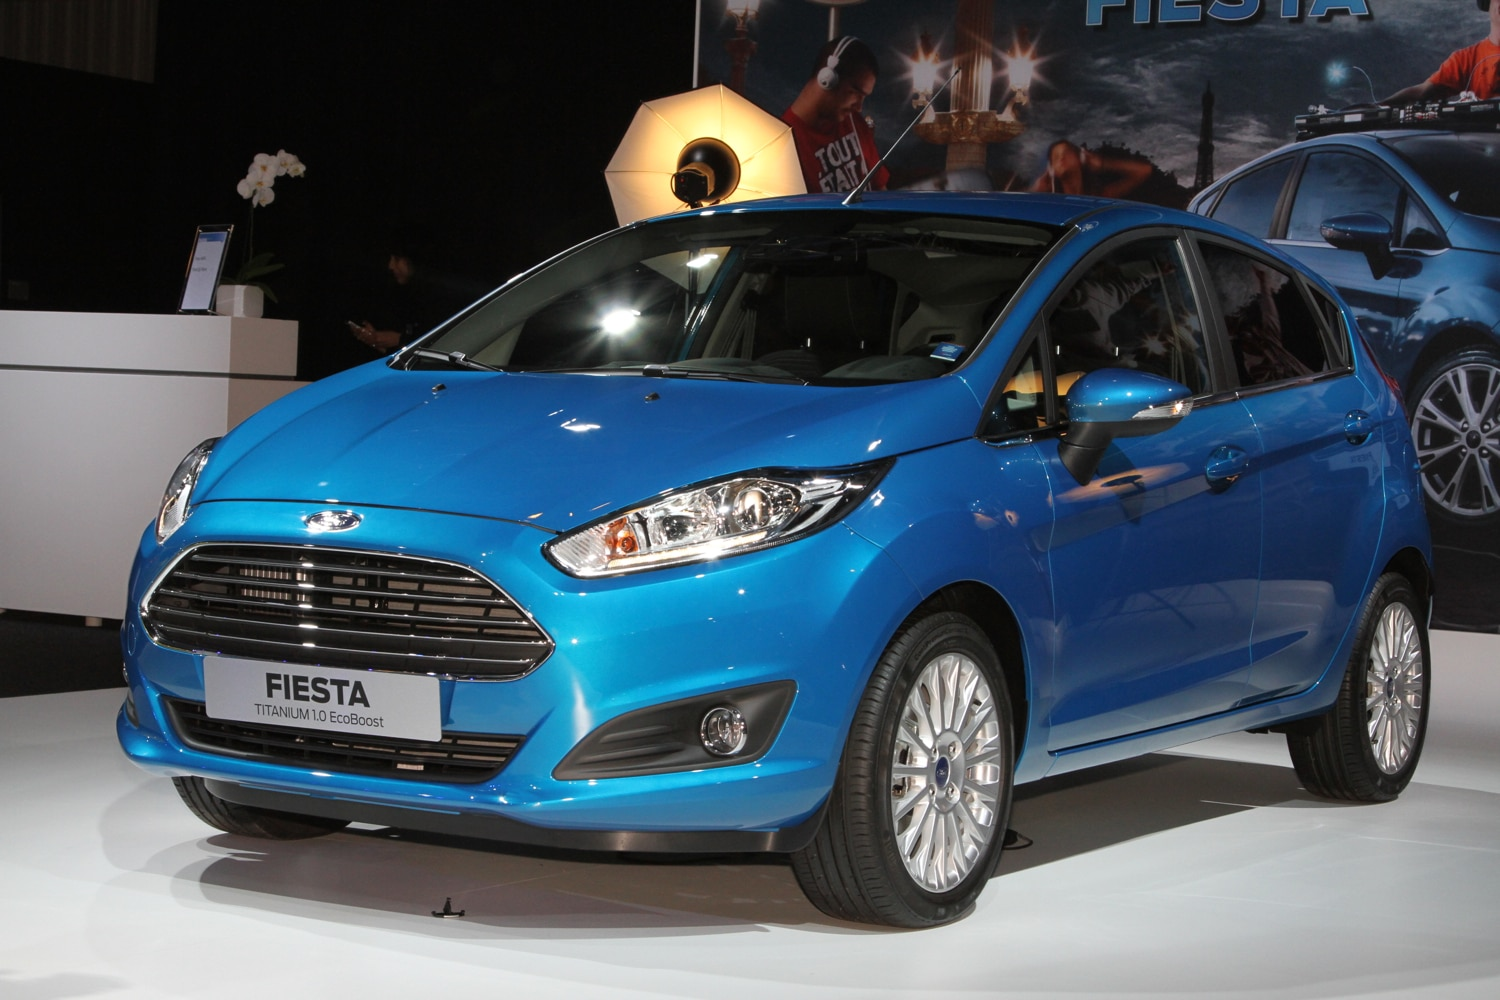 paris 2012 ford fiesta shows off its fusion like nose ecoboost engines. Black Bedroom Furniture Sets. Home Design Ideas